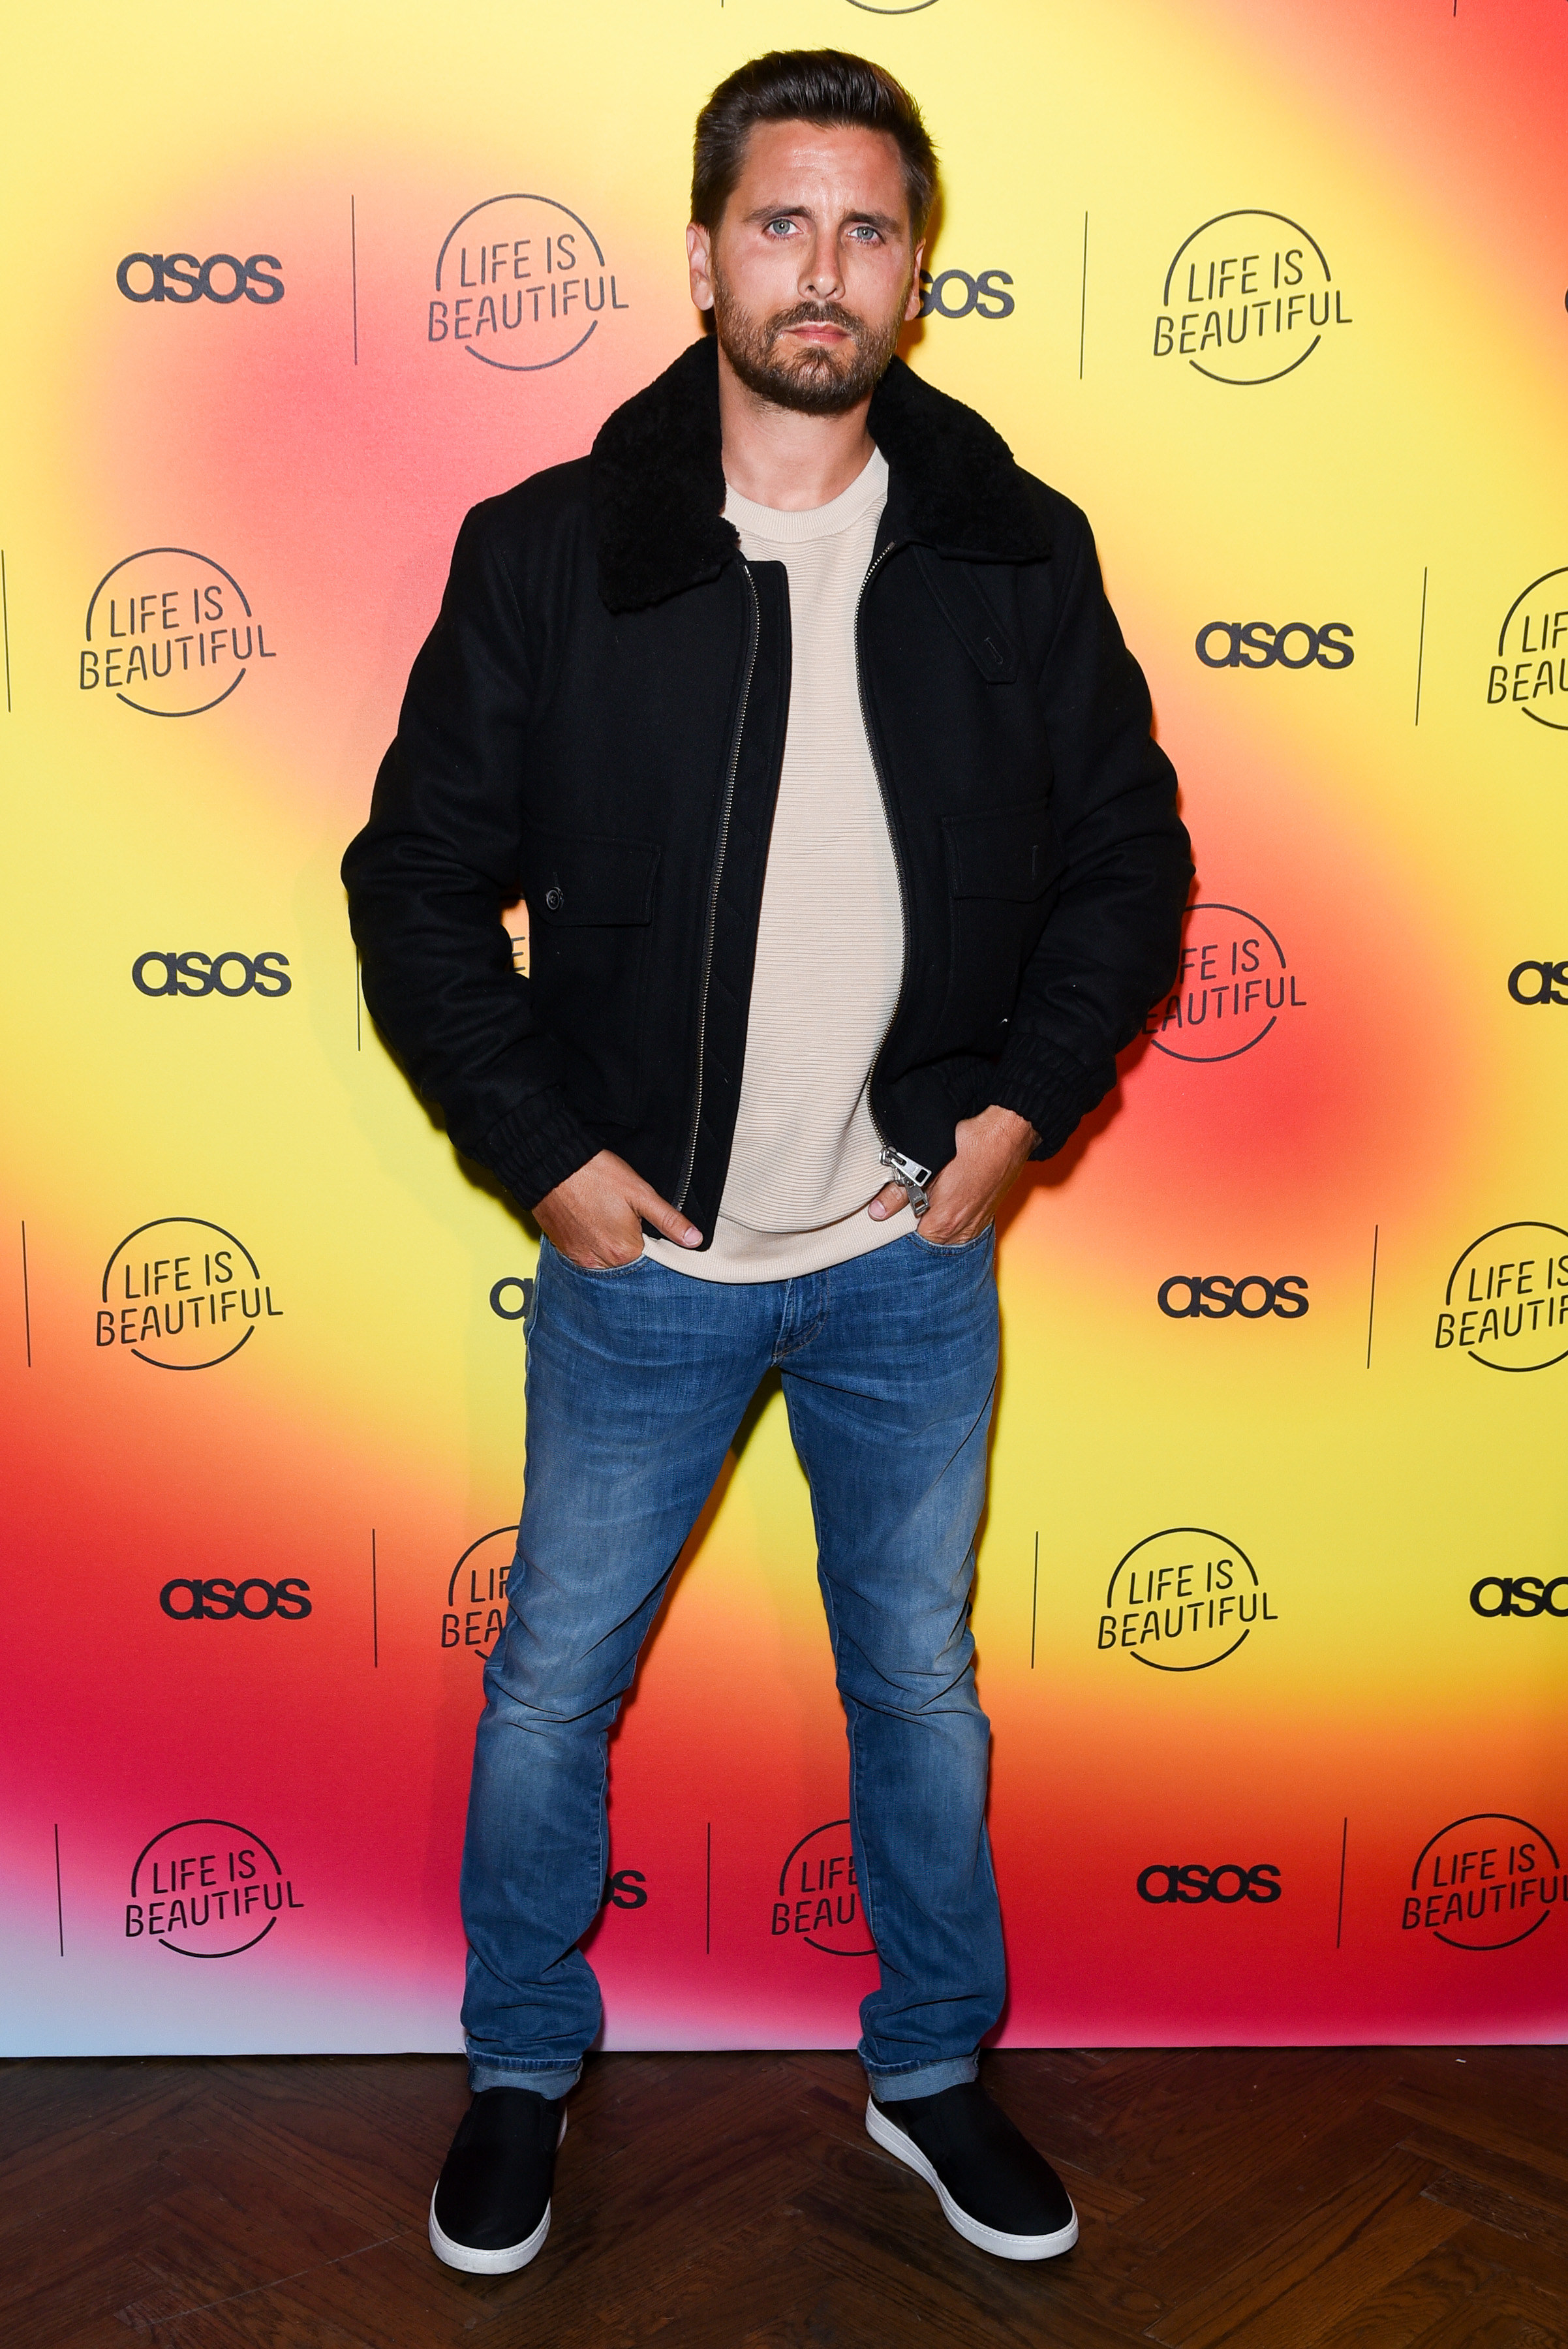 Scott Disick attends ASOS celebrates partnership with Life Is Beautiful at No Name on April 25, 2019 in Los Angeles, California